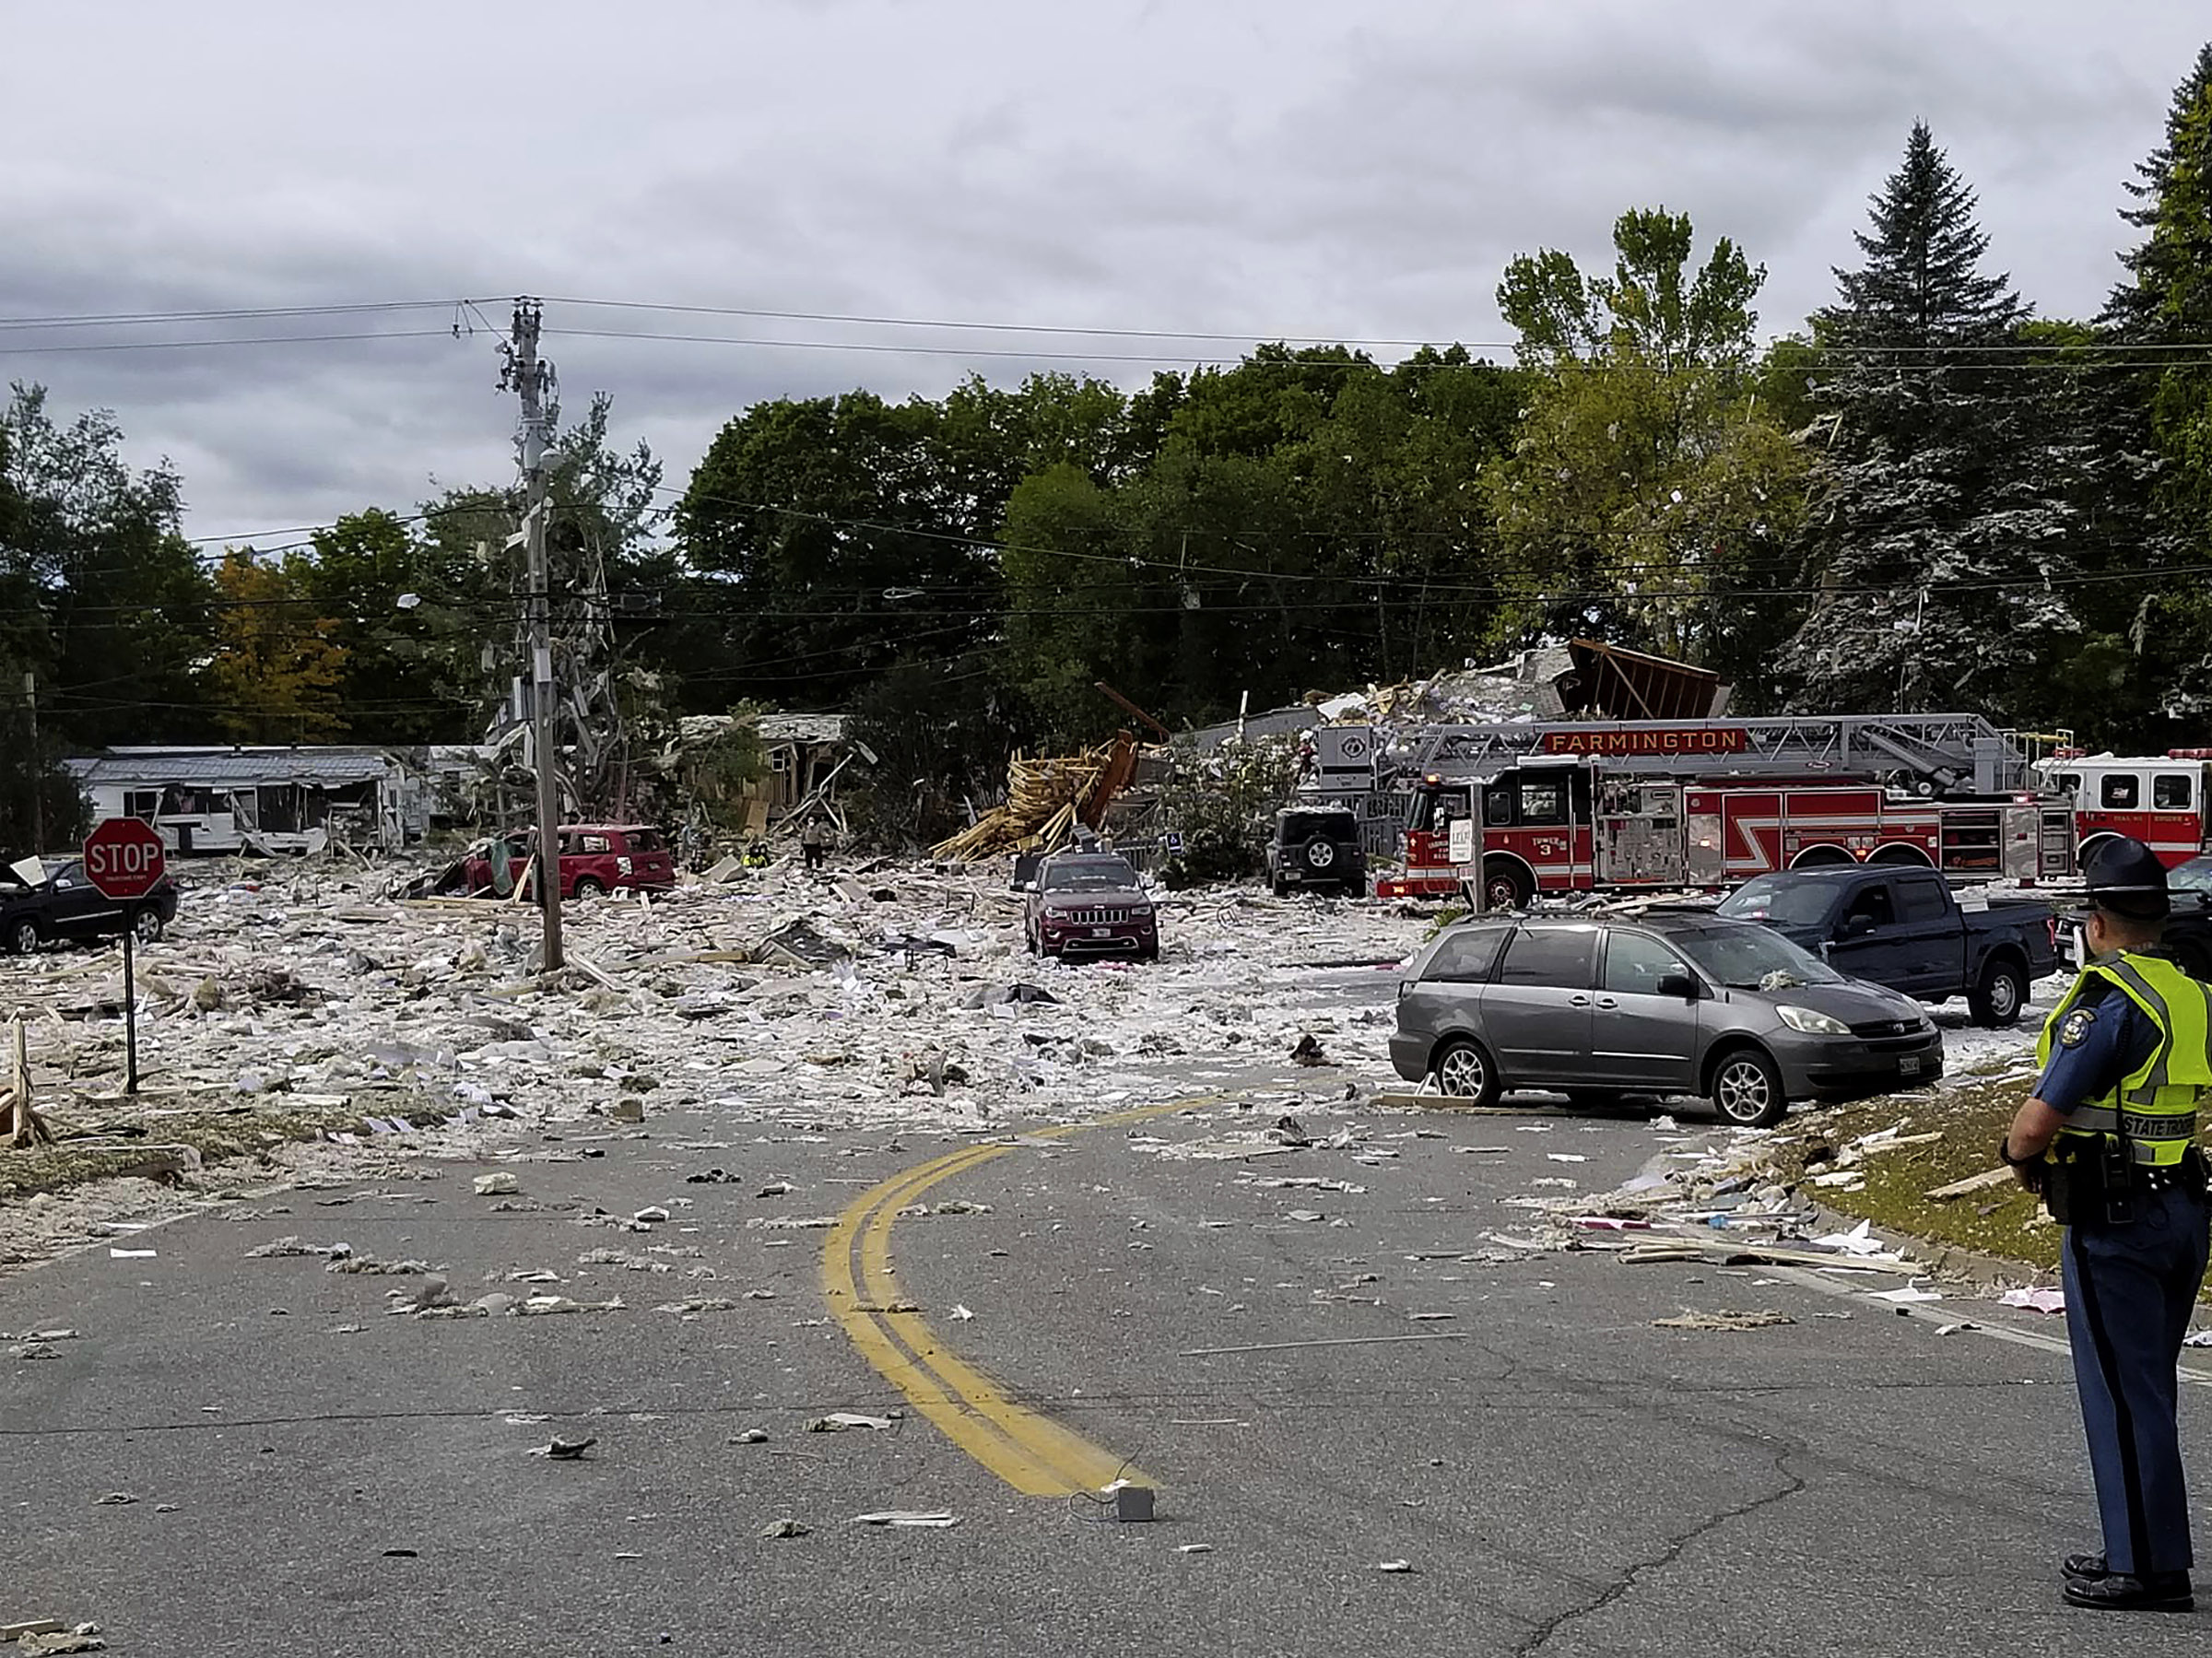 A police officer stands guard on Sept. 16, 2019, at the scene of a deadly propane explosion which leveled new construction in Farmington, Maine.